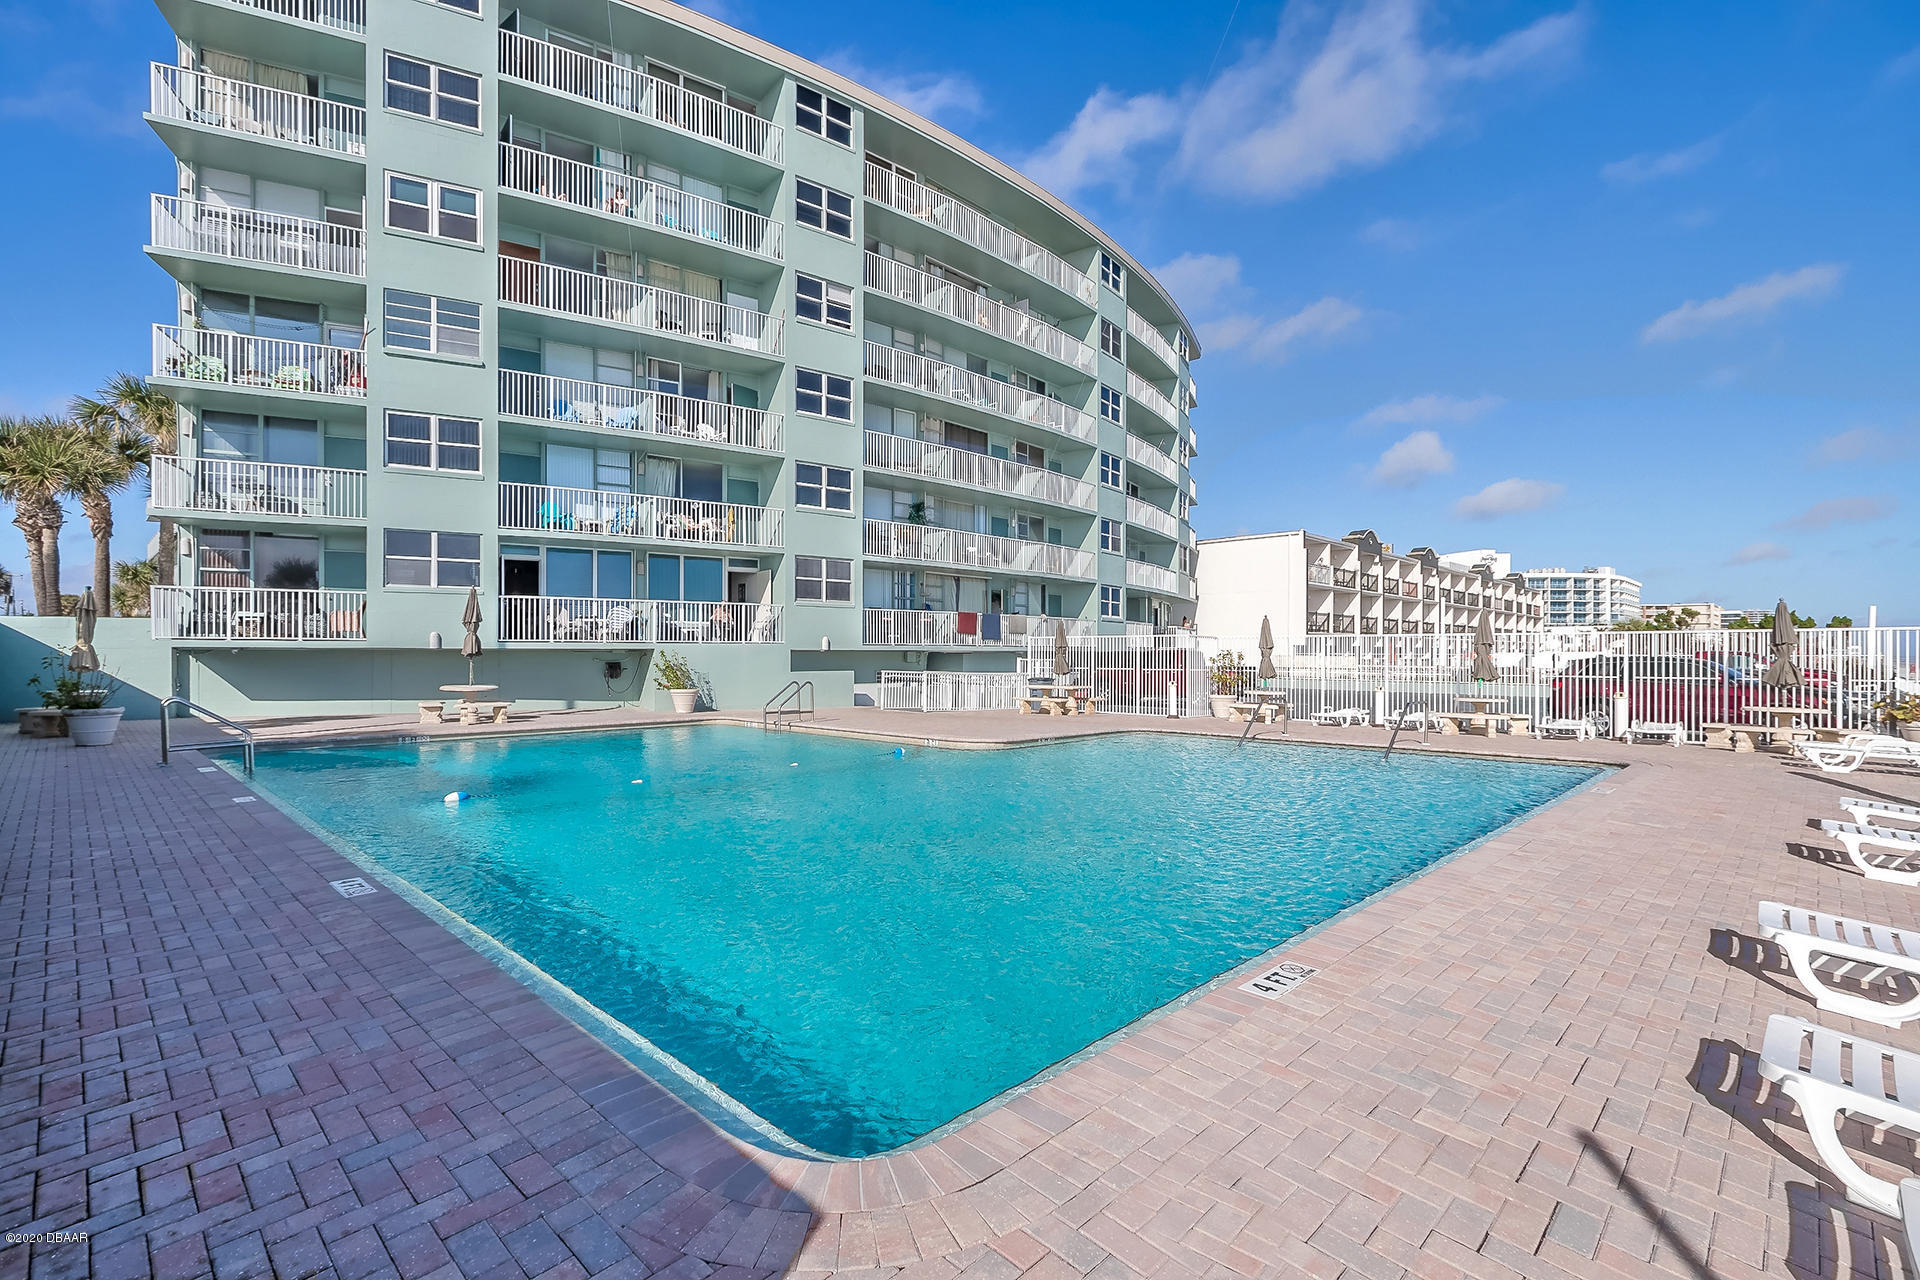 Photo of 800 N Atlantic Avenue #703, Daytona Beach, FL 32118